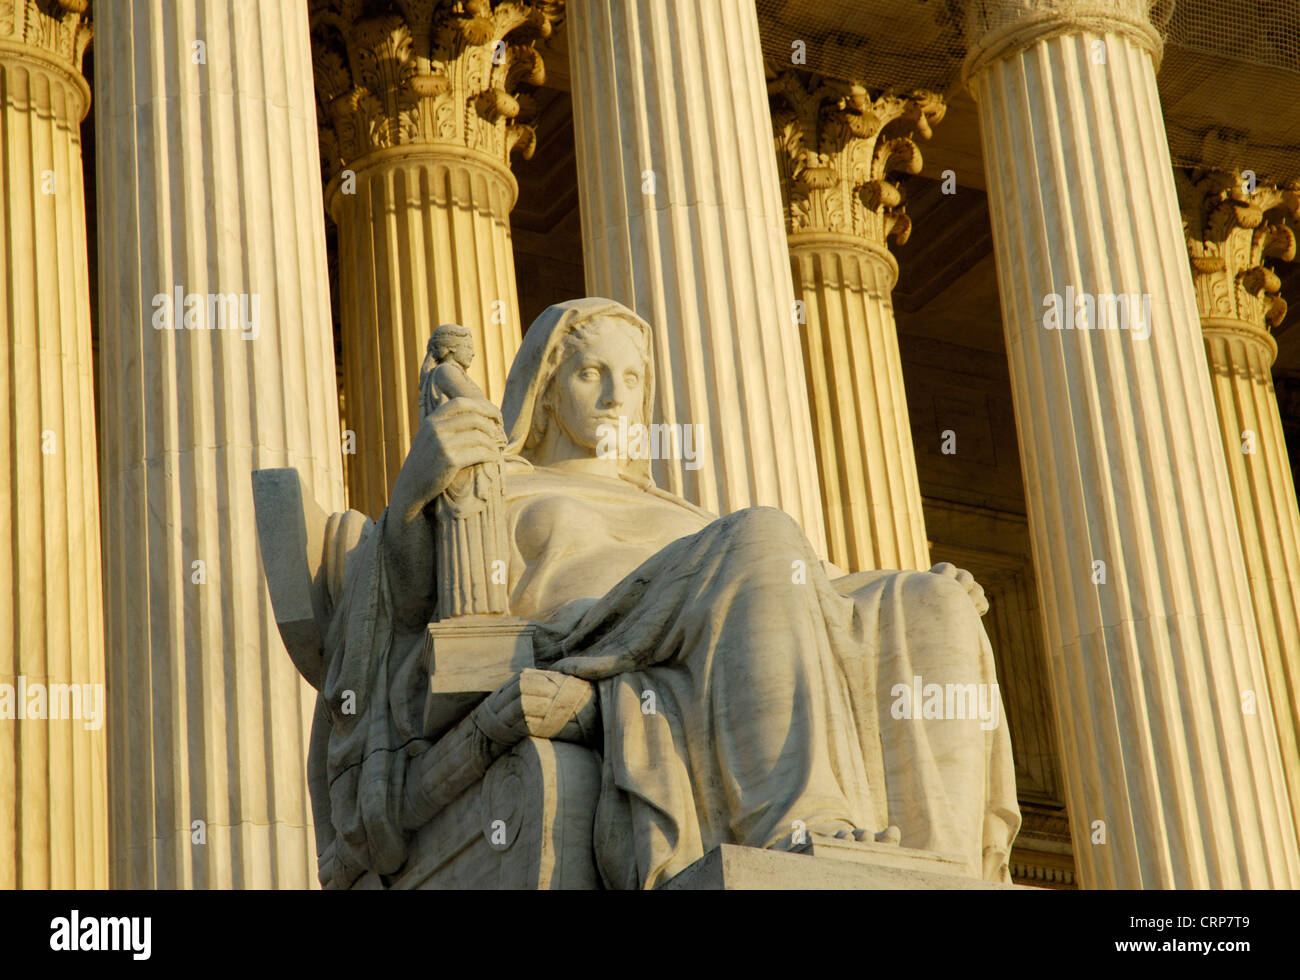 United States Supreme Court building with Contemplation of Justice statue - Stock Image